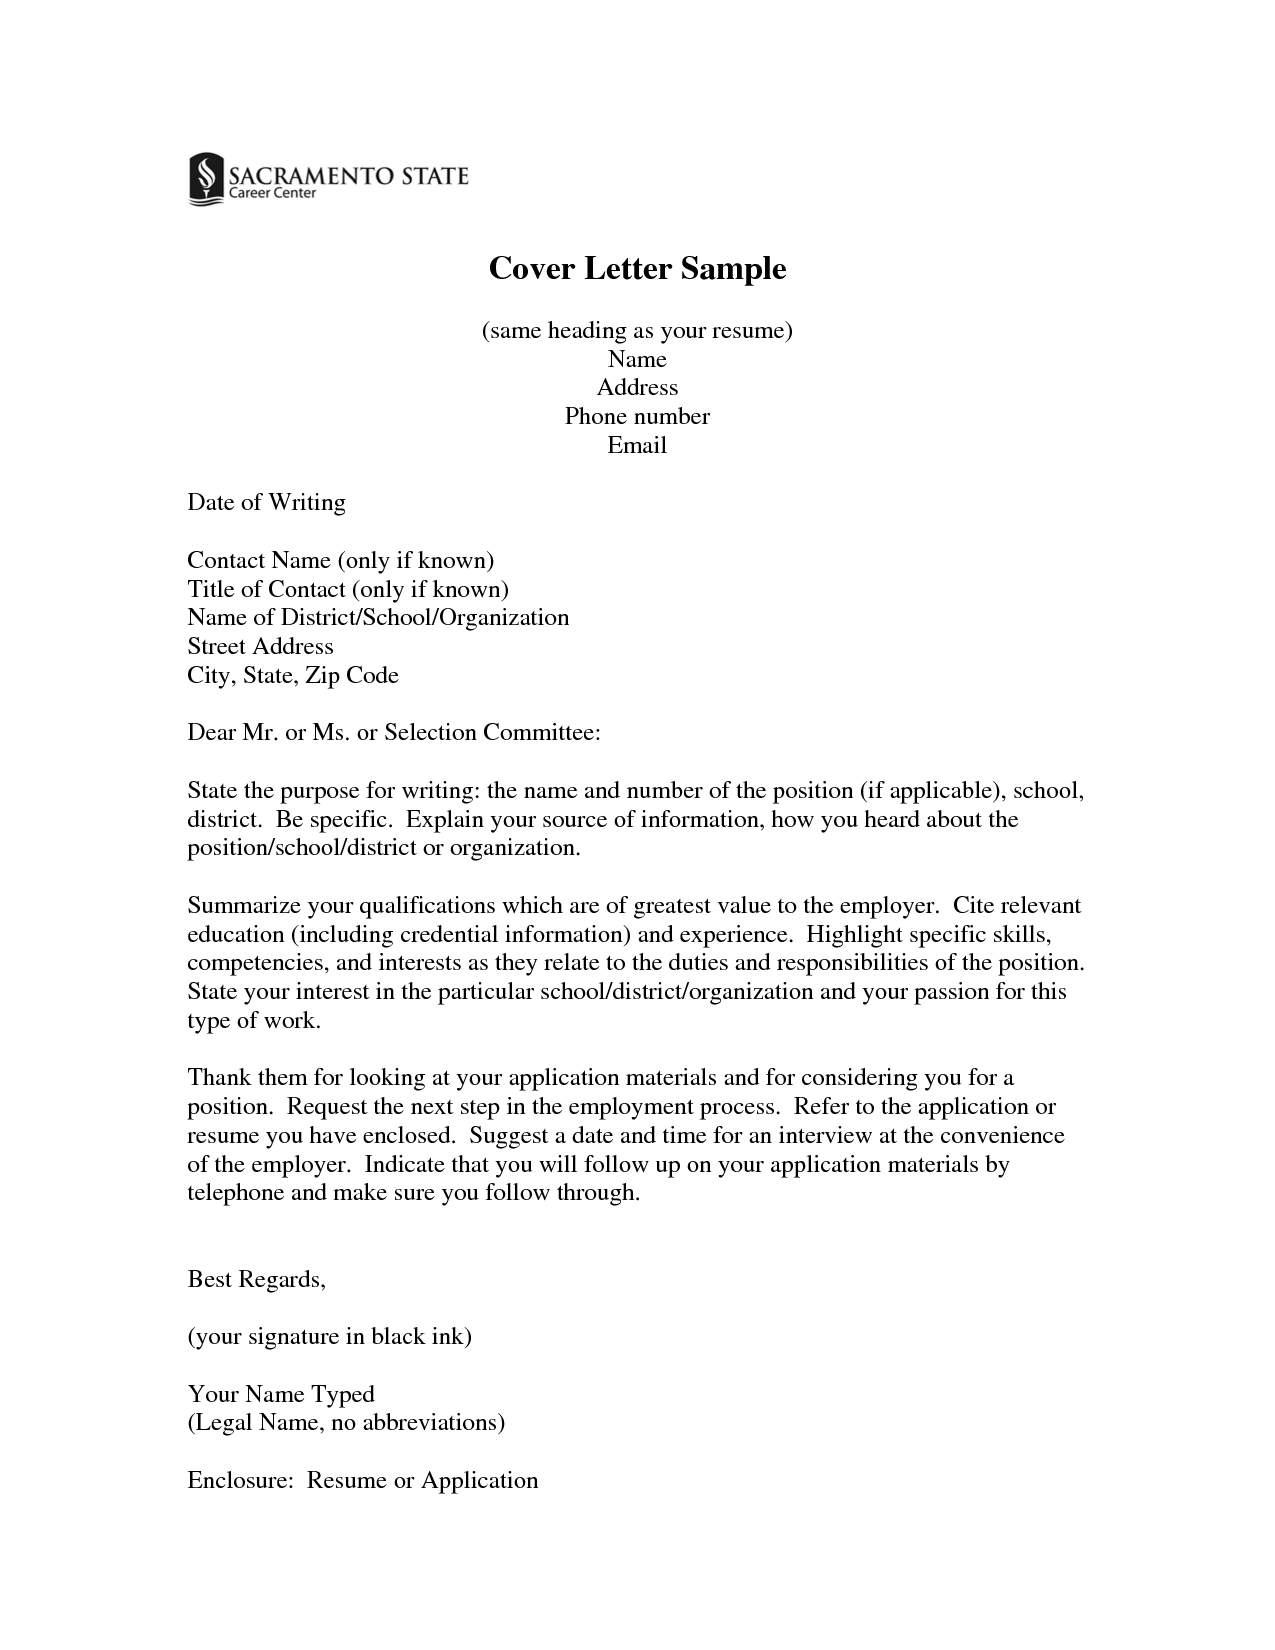 Same cover letters for resume cover letter sample same for How to head a cover letter with no name